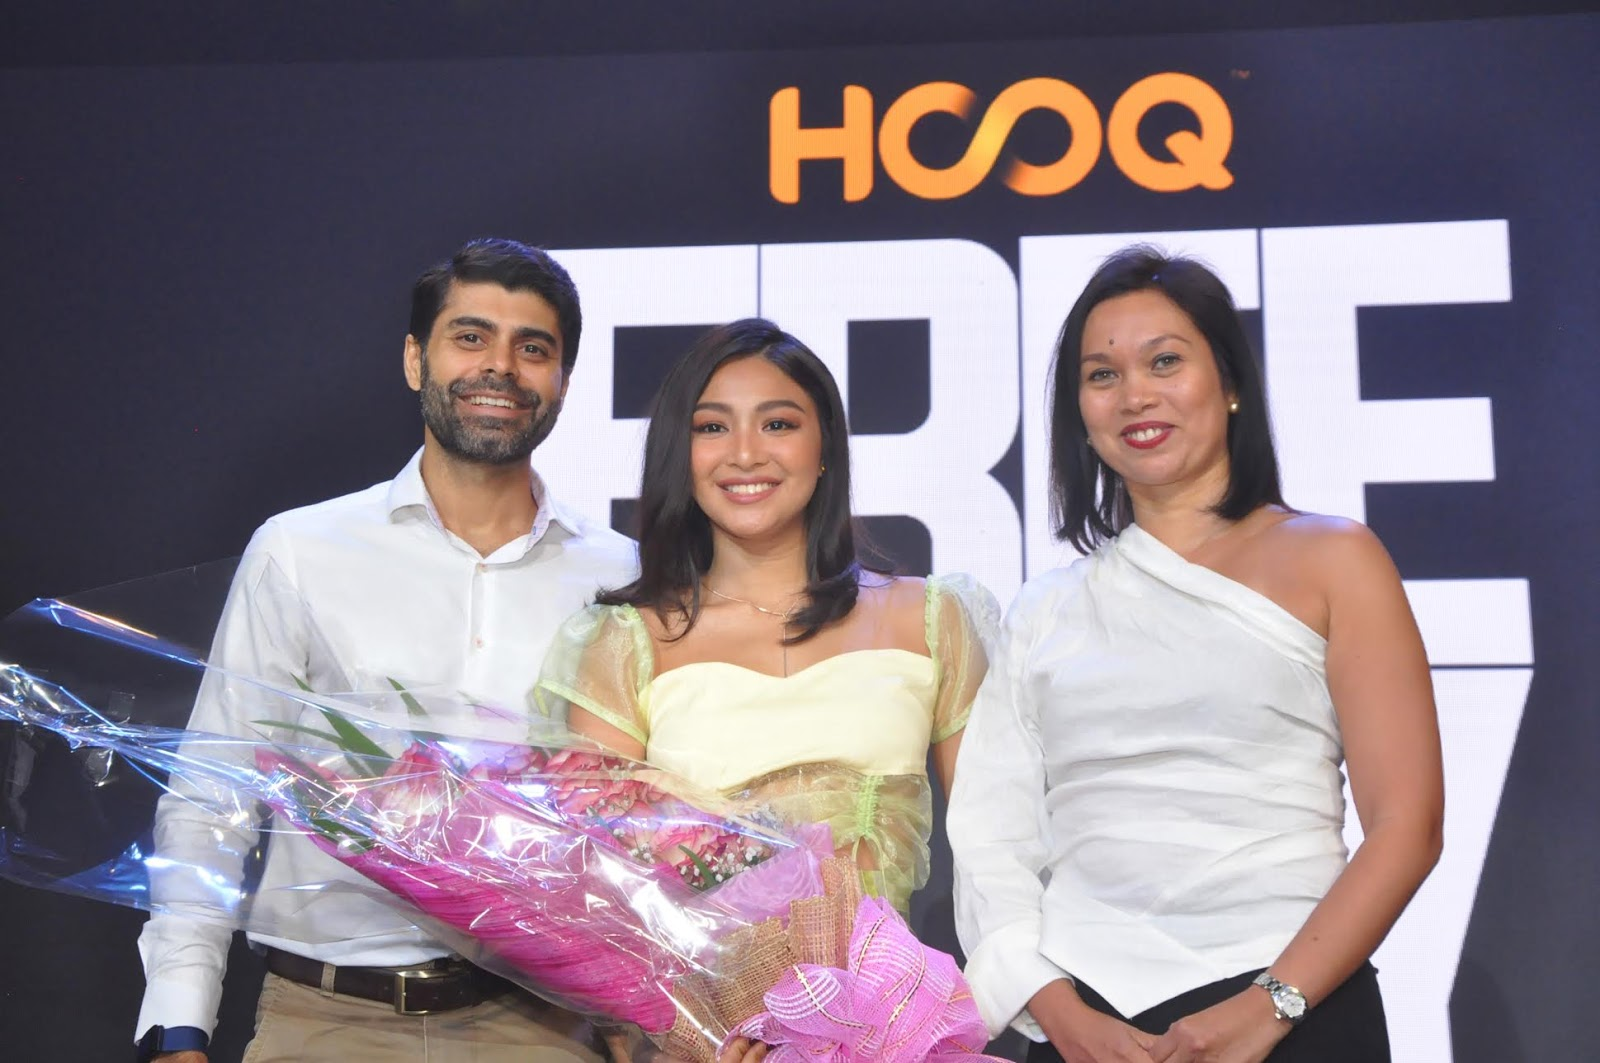 HOOQ Free and Freeplay: Finally, you can watch 1,000 movie